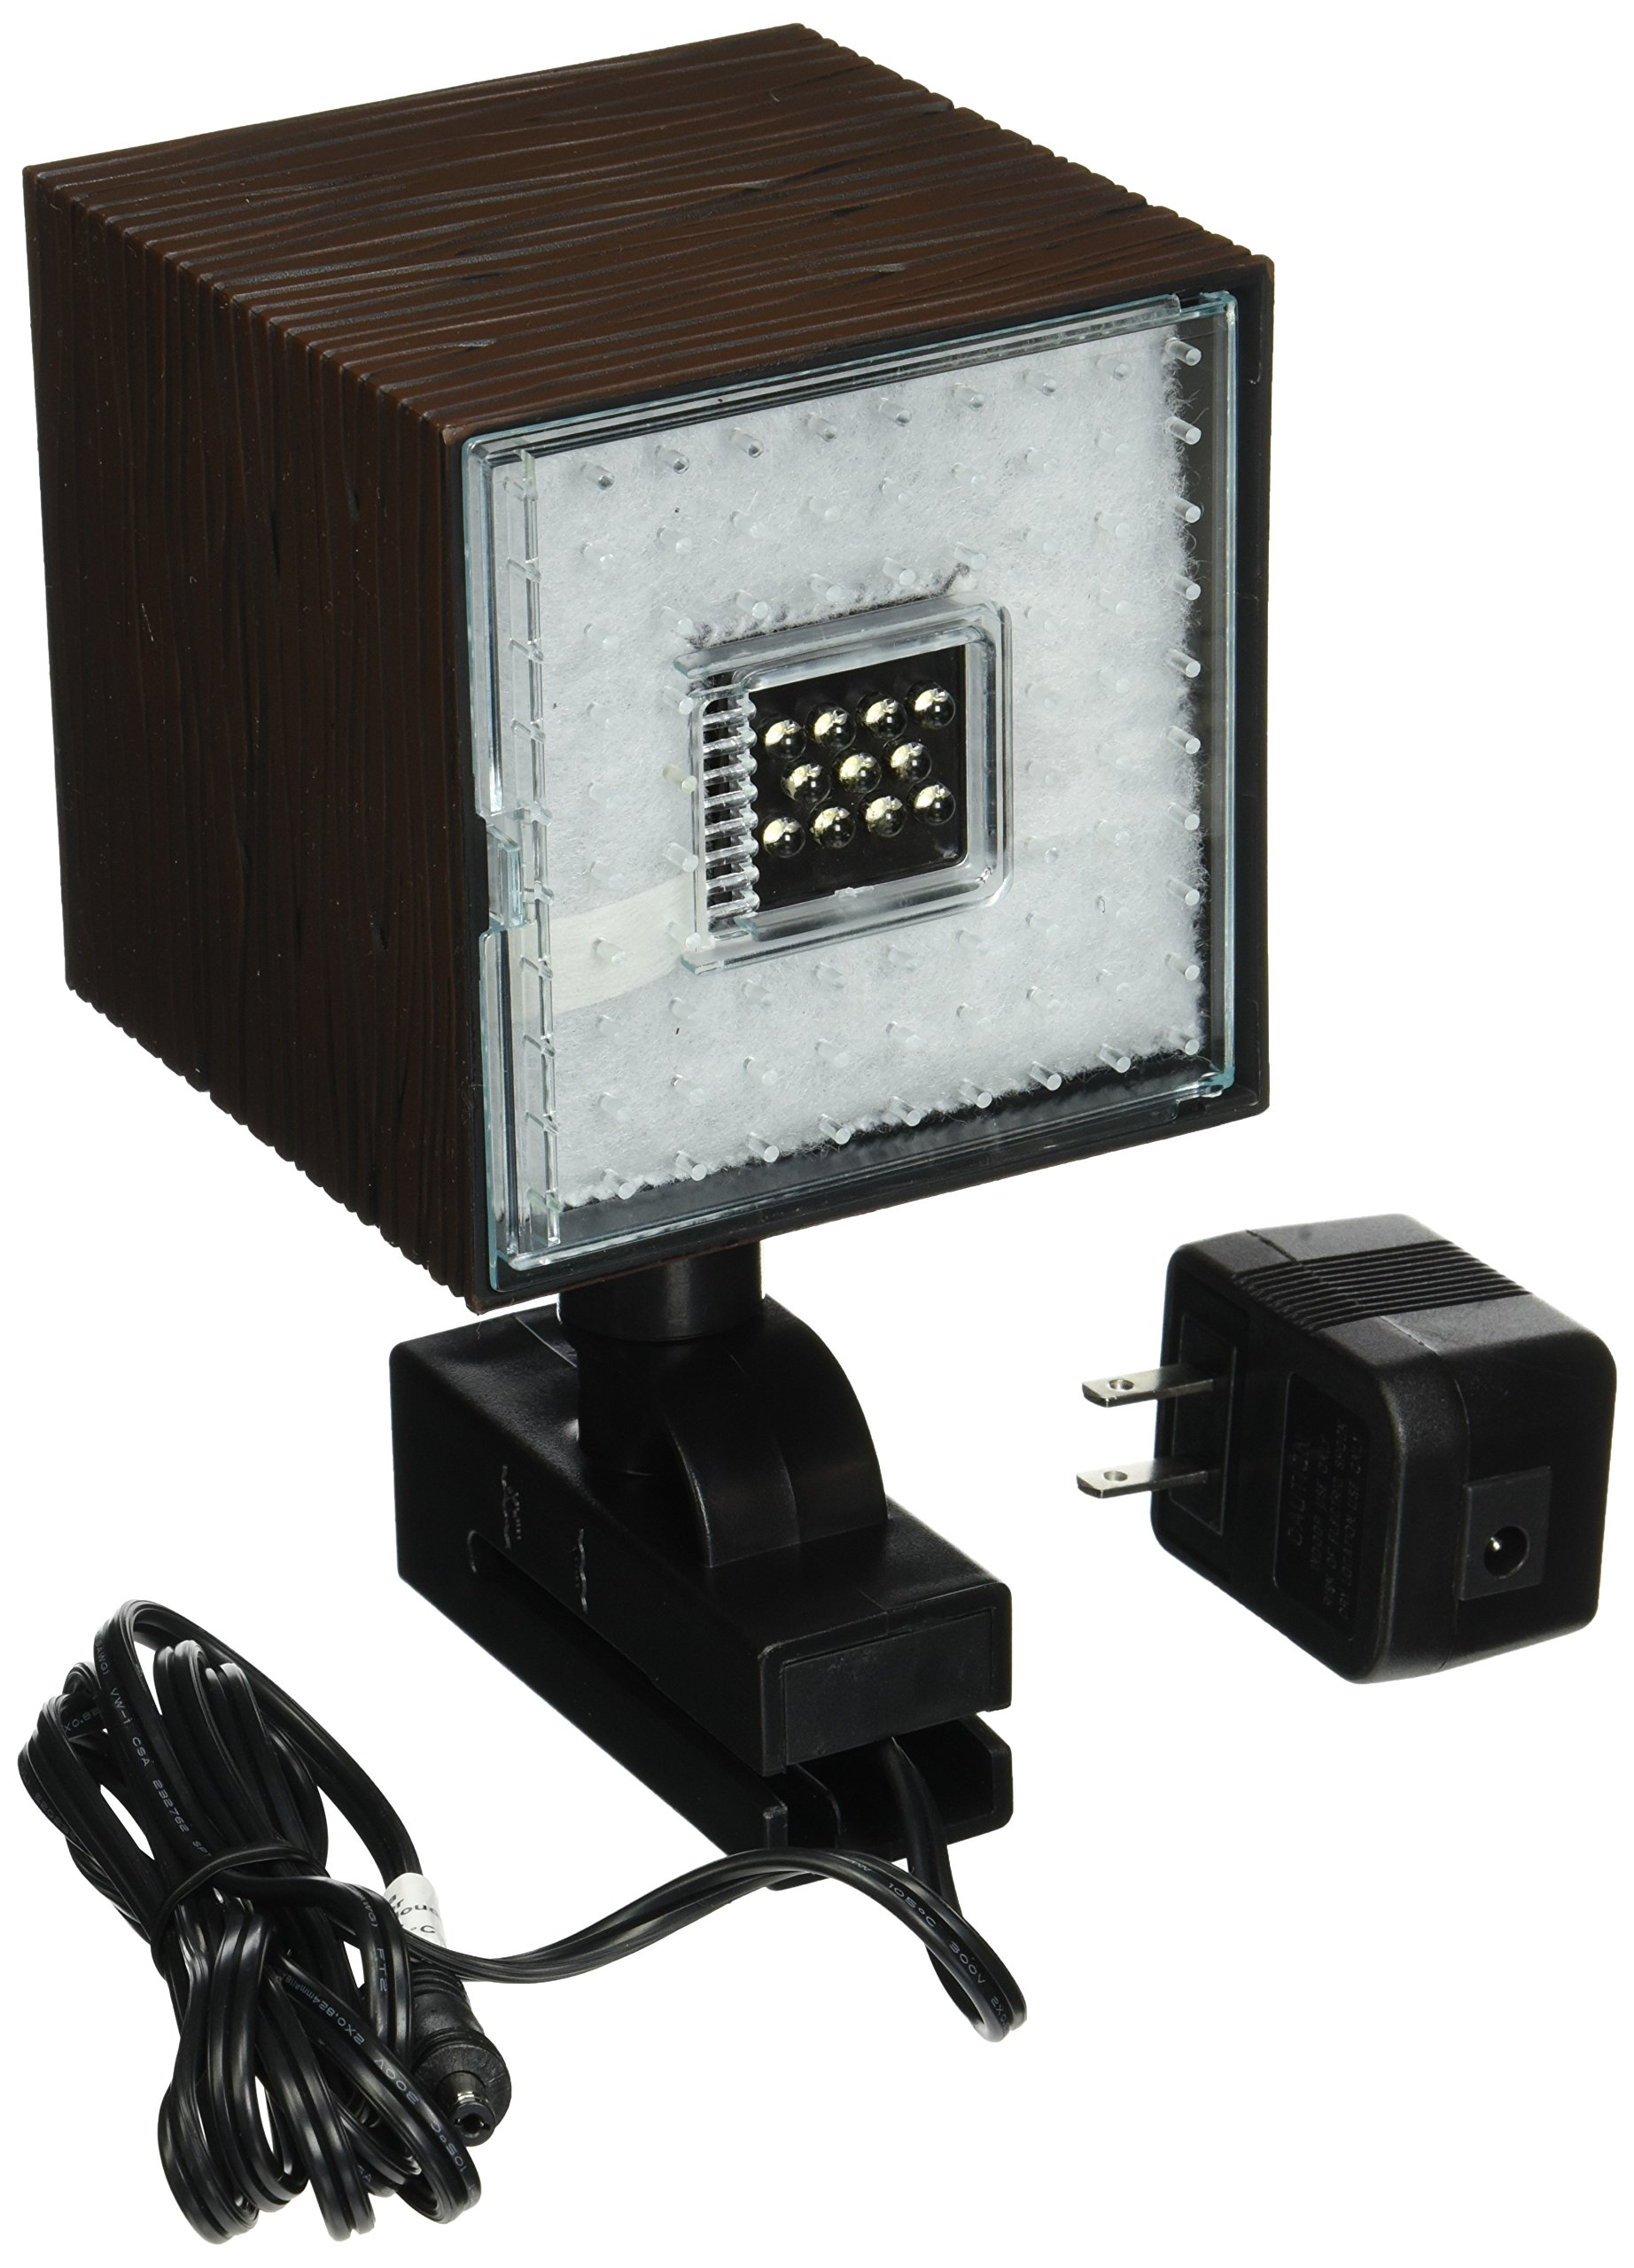 Fluval Filter/Light Cube with Transformer and Media Replacement for Fluval Chi 19L Aquarium Kit by Fluval